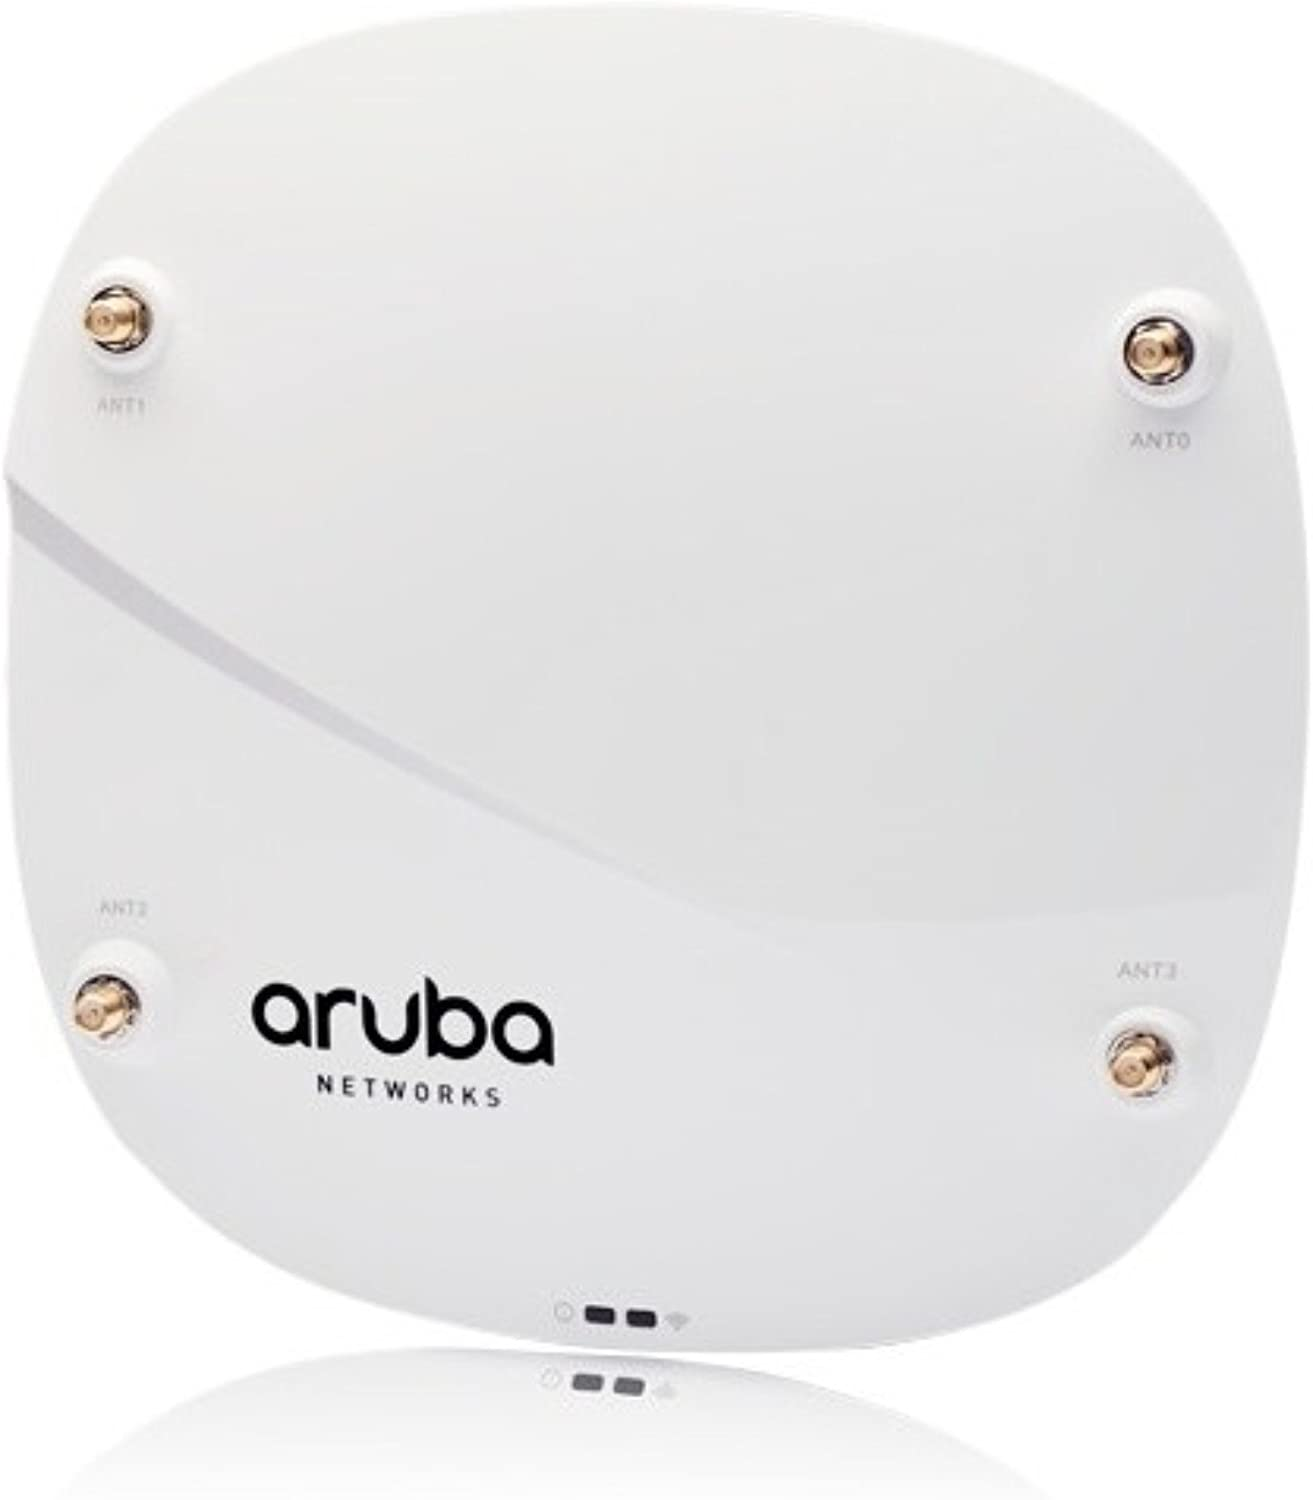 """Aruba Instant IAP-325-US Wireless Network Access Point JW327A (802.11ac, 4x4 MIMO, Dual Band Radio, Integrated Antennas, Business Class Enterprise)"""""""